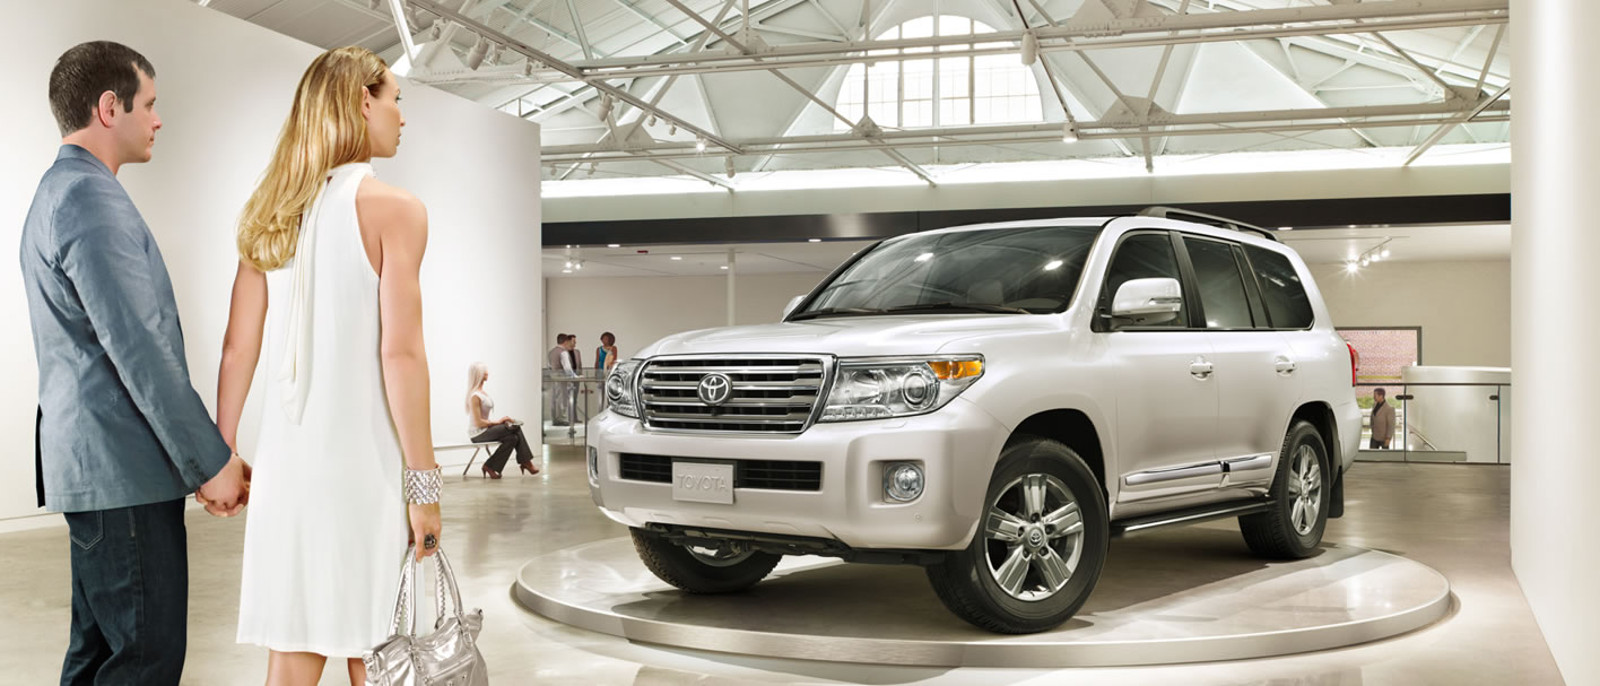 2015 Toyota Land Cruiser in showroom